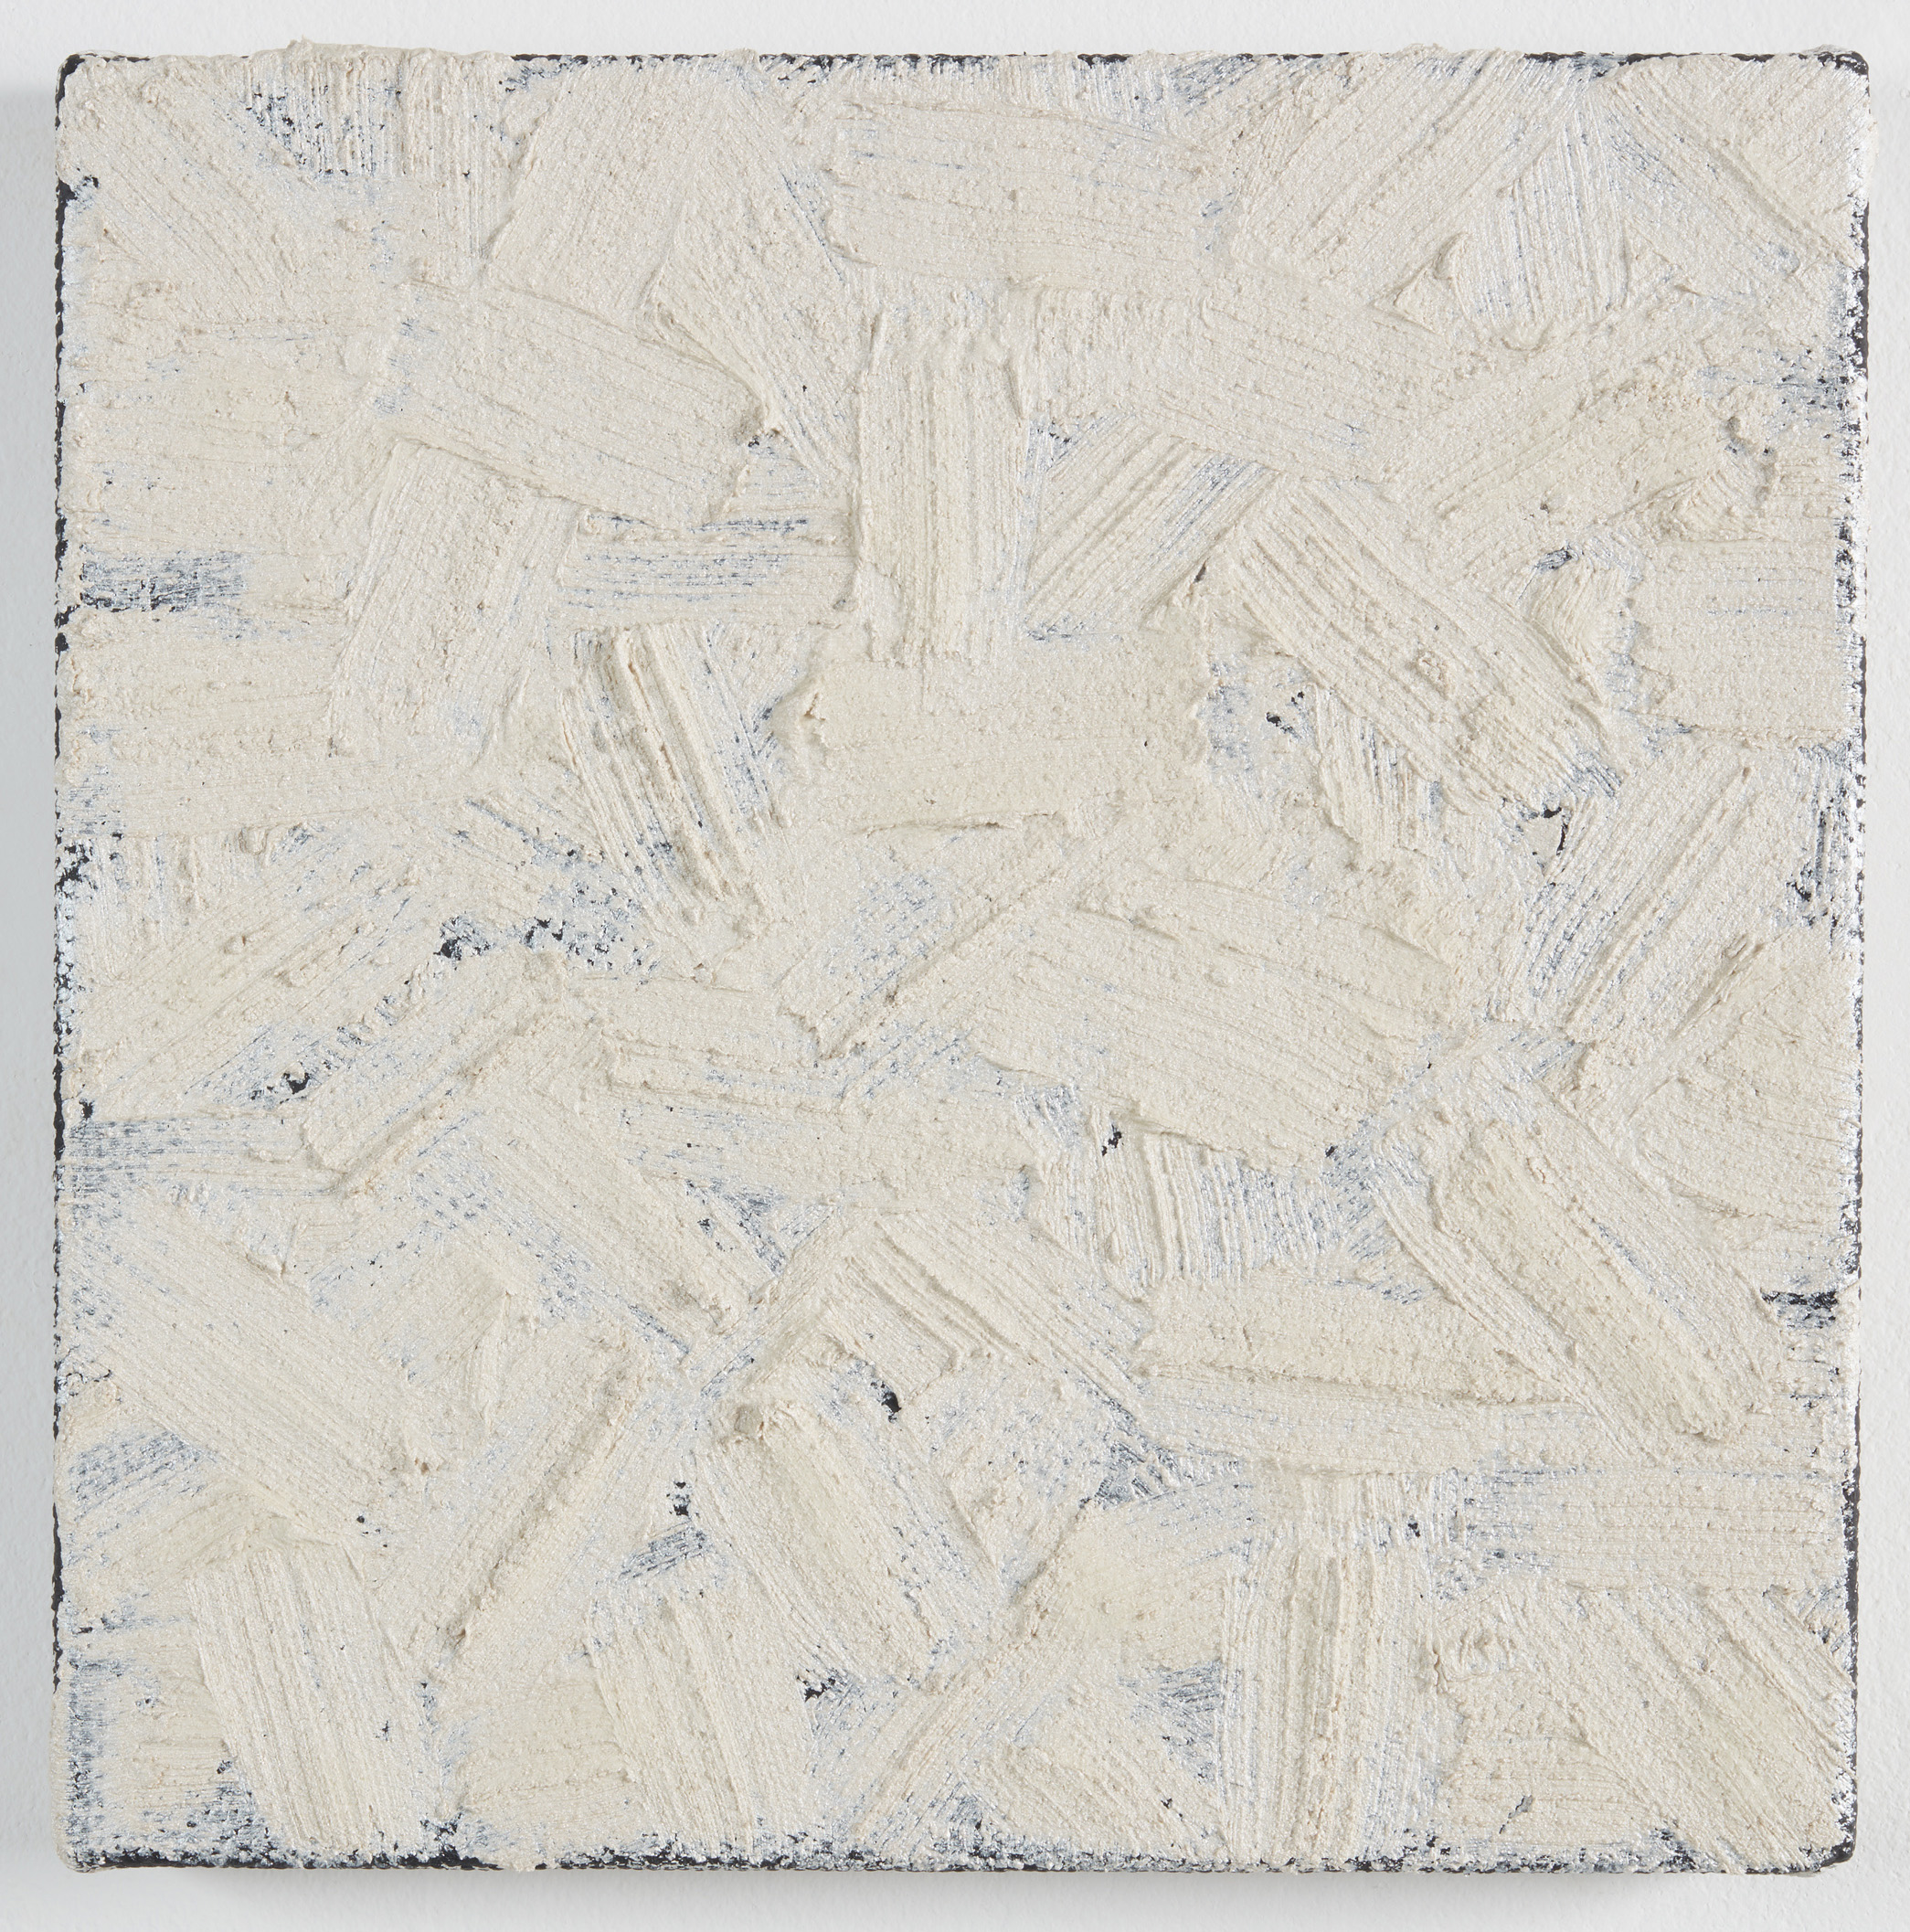 DAVID SERISIER  mica on black square painting , 2019 oil on linen 30.5 x 30.5 cm